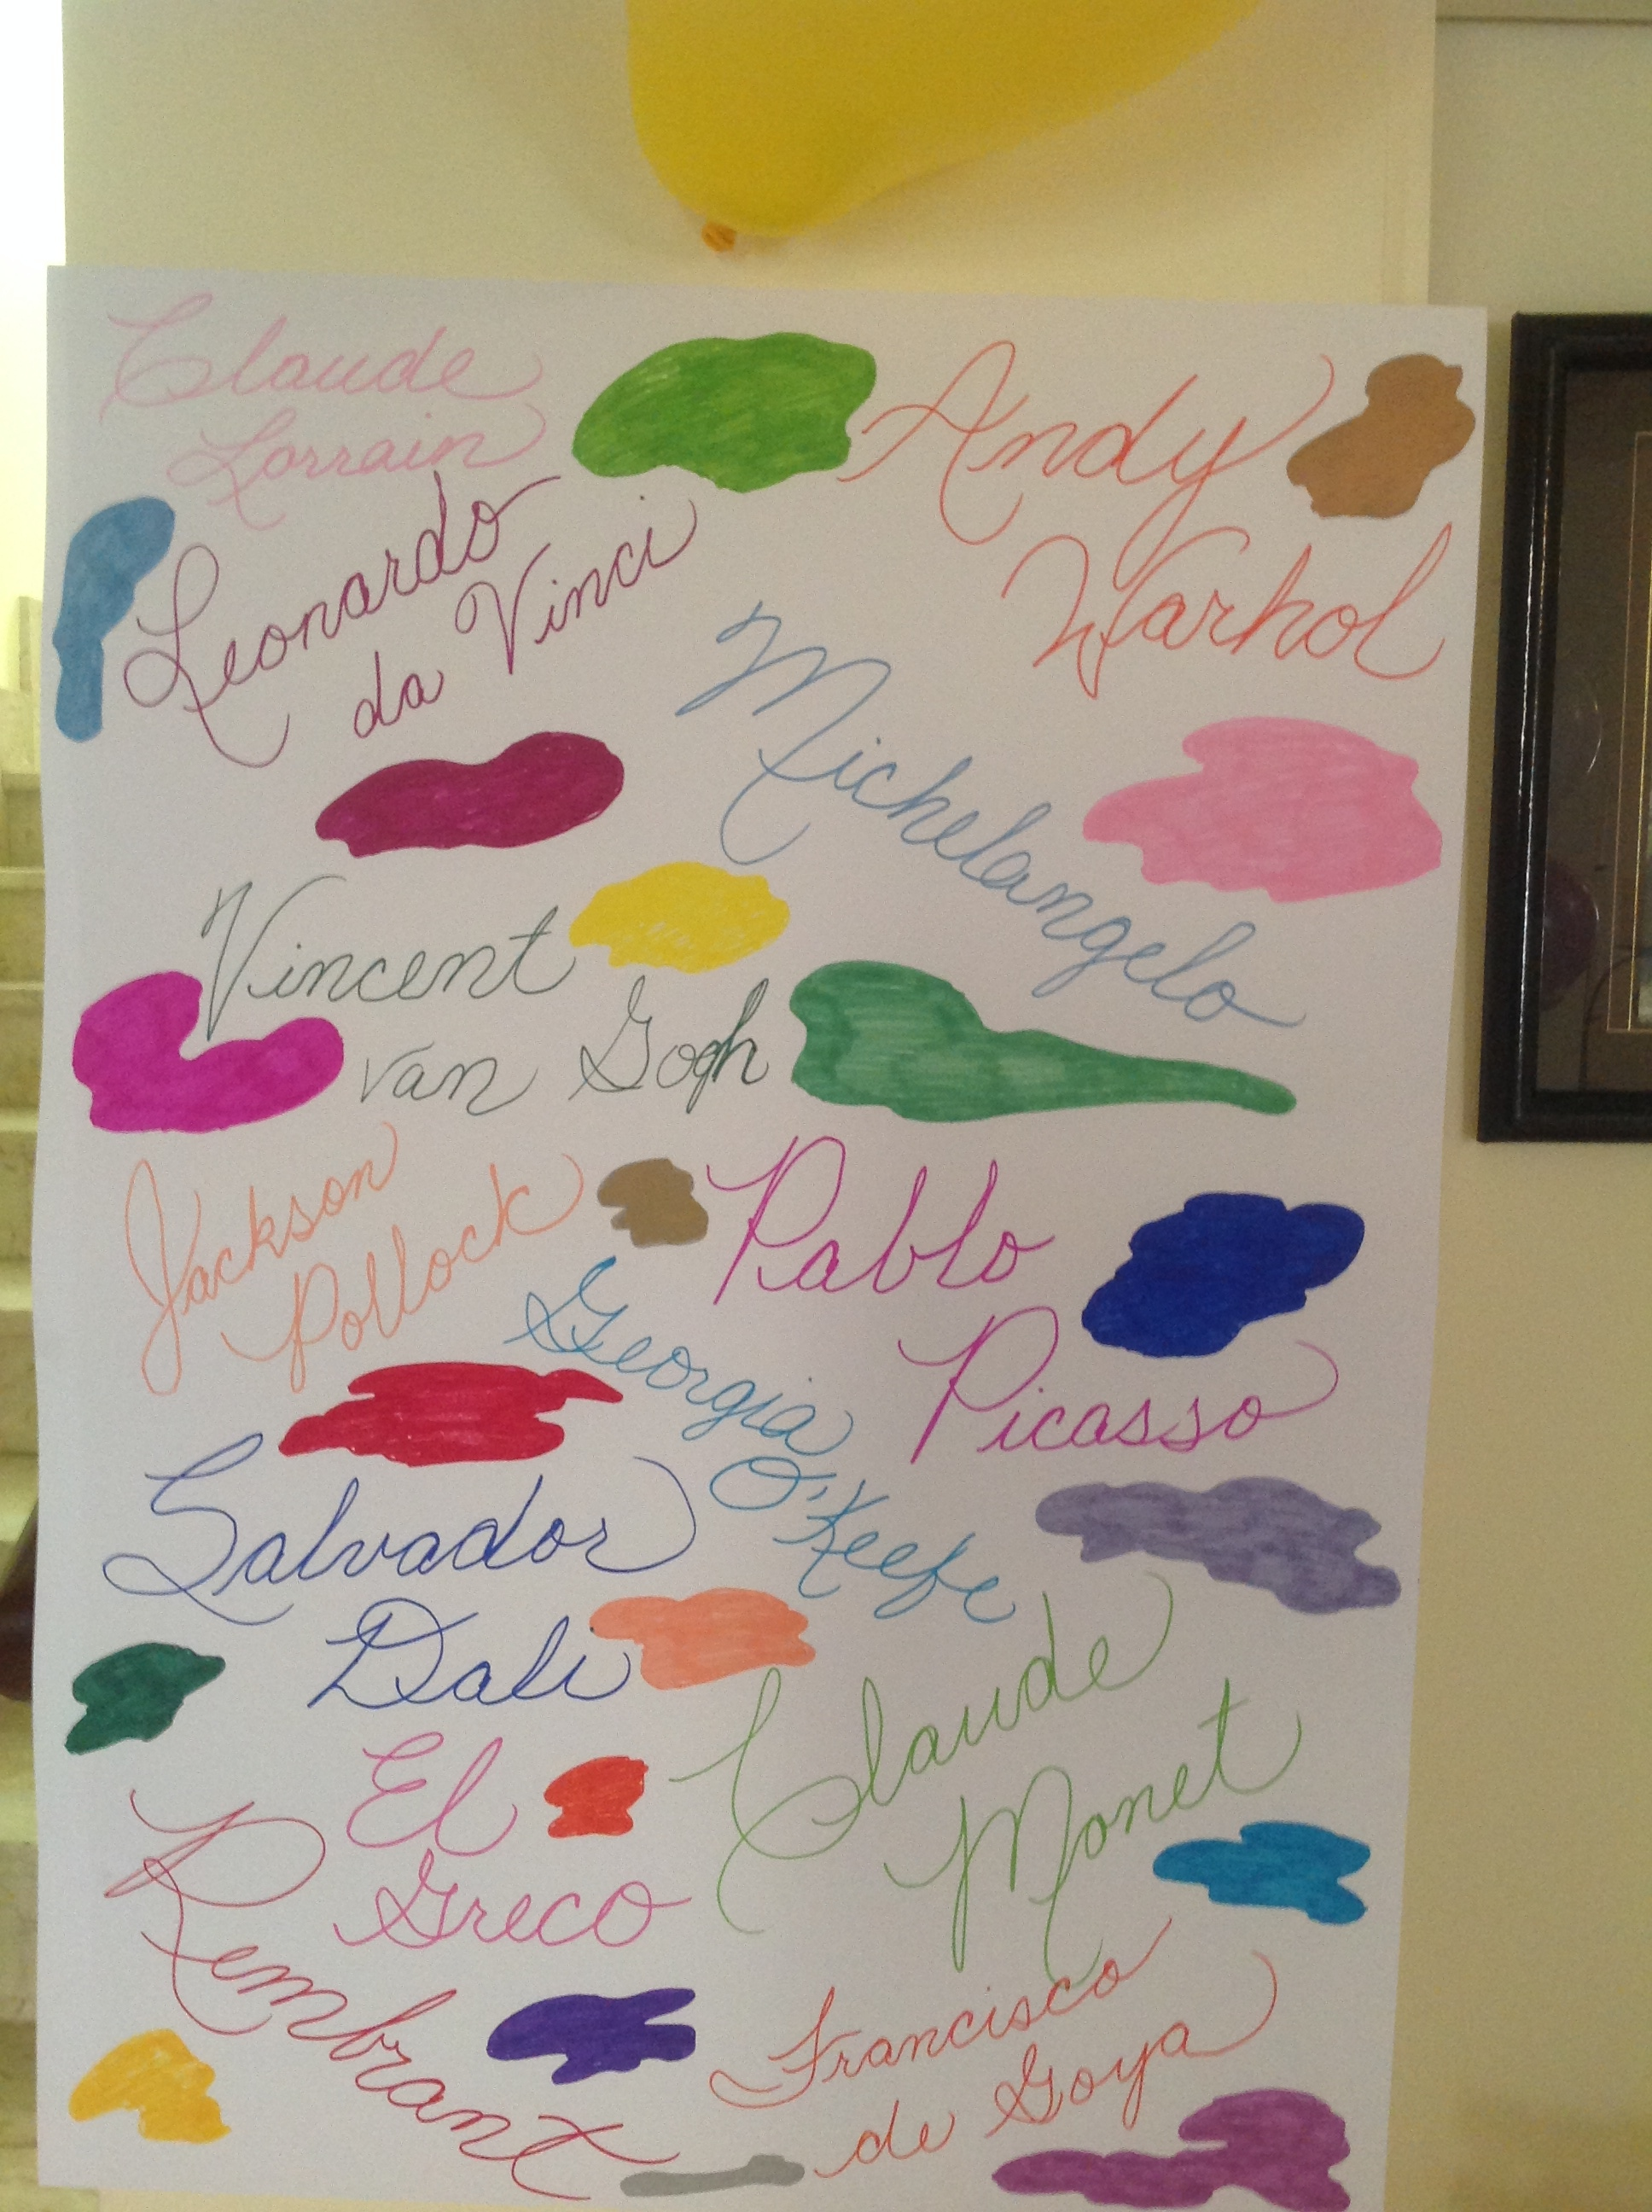 Poster for Kiddo's painting party, held in May this year, 2 months ahead of time.